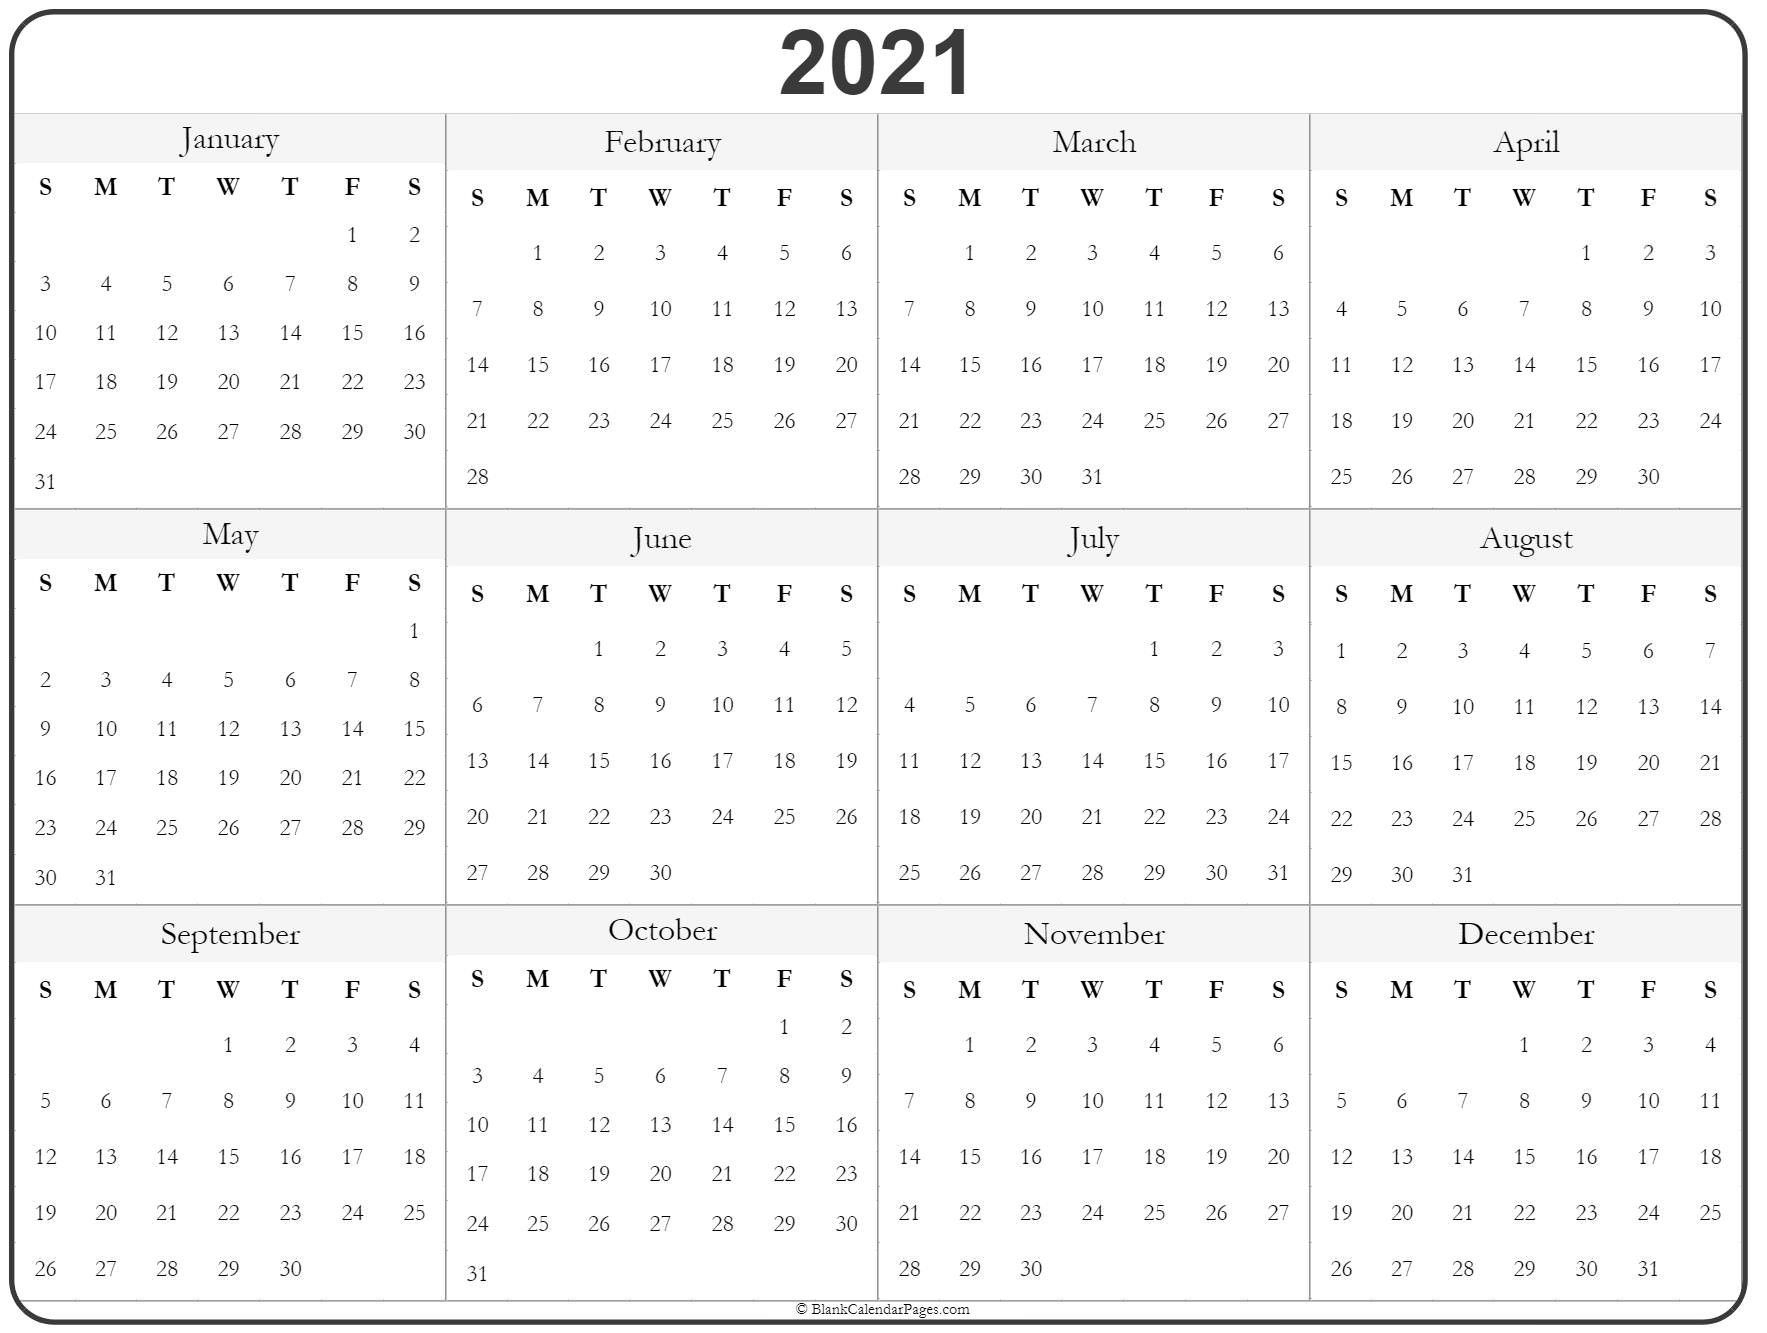 20+ Yearly Calendar 2021 Blank - Free Download Printable in Fiscal Year Calendar 2020 Printable Bangla